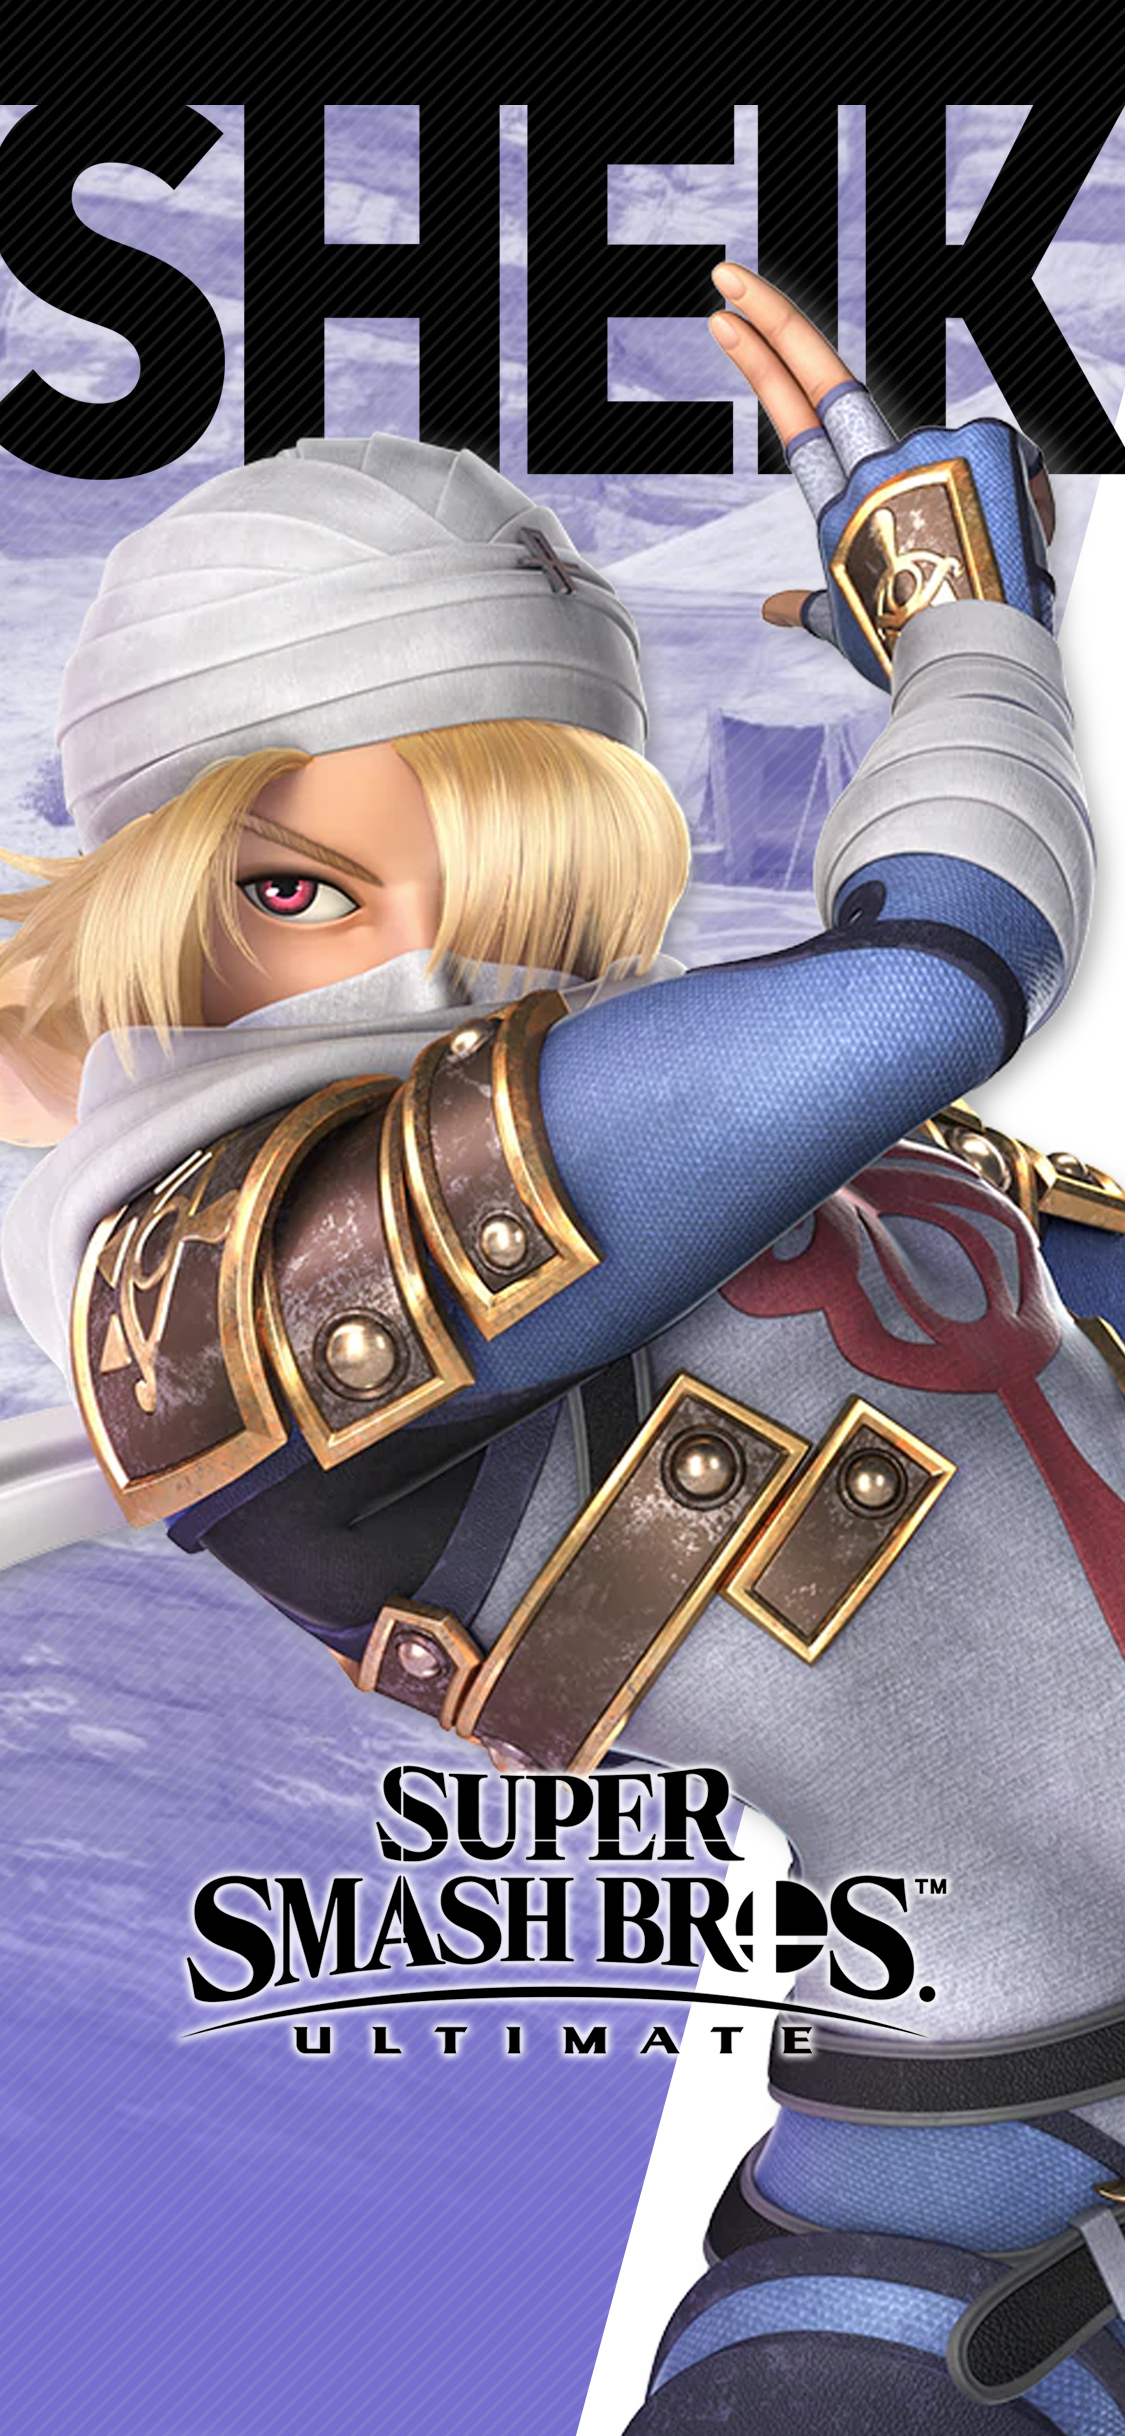 Samsung Galaxy Animated Wallpaper Super Smash Bros Ultimate Sheik Wallpapers Cat With Monocle